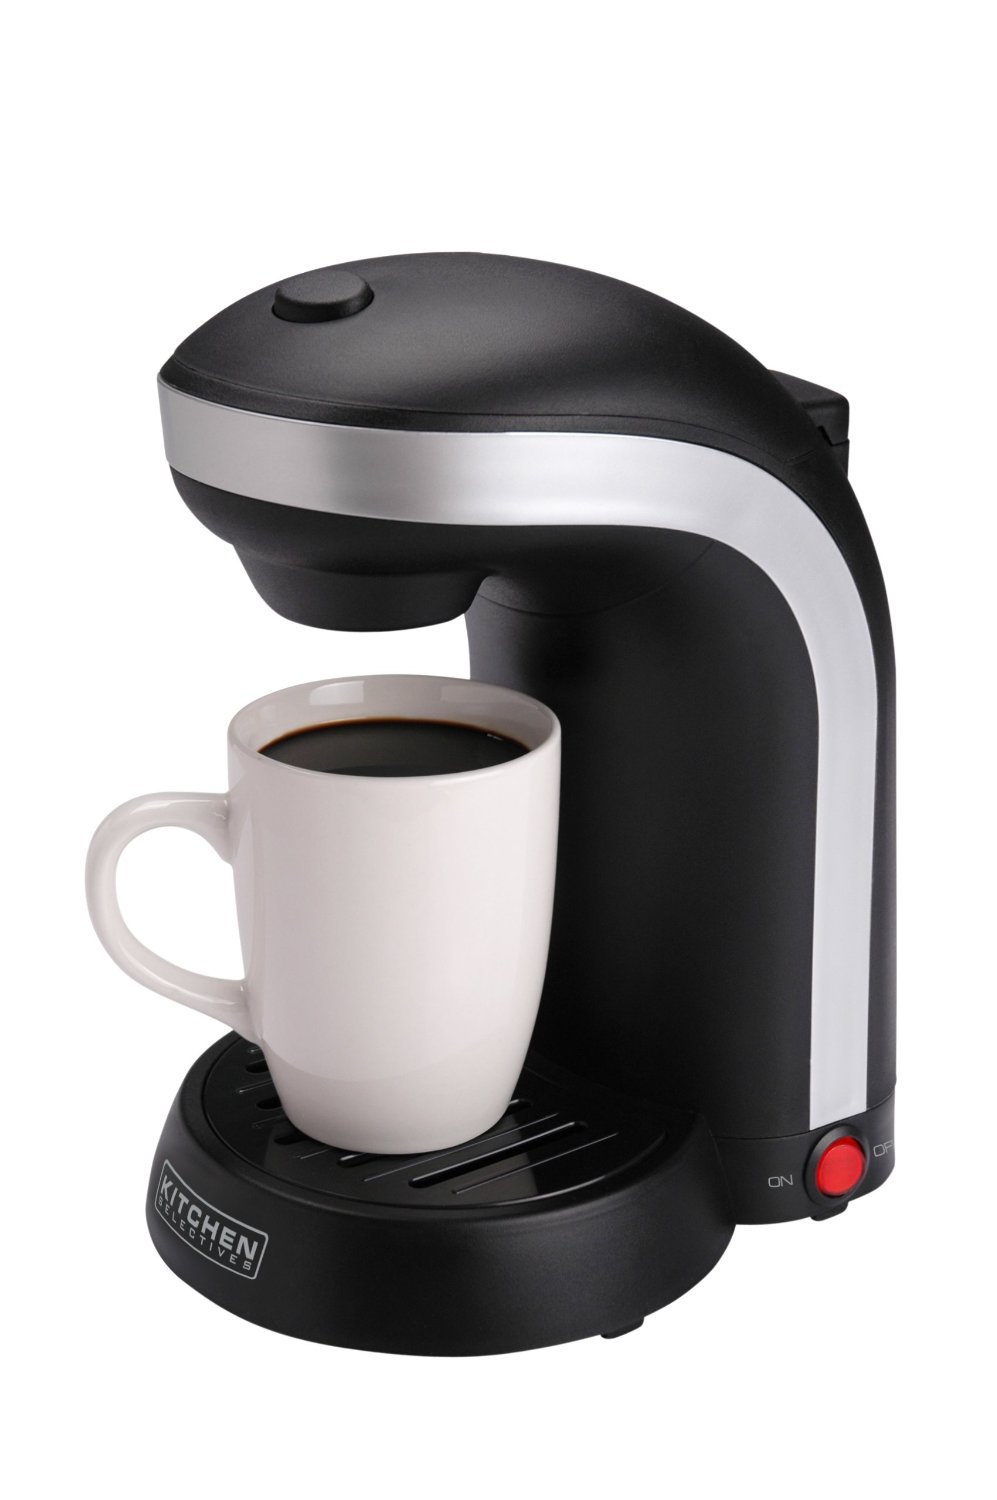 Best Coffee Maker One Cup : Best Organic Single Origin Coffee Bean Black Single Cup Coffee Maker